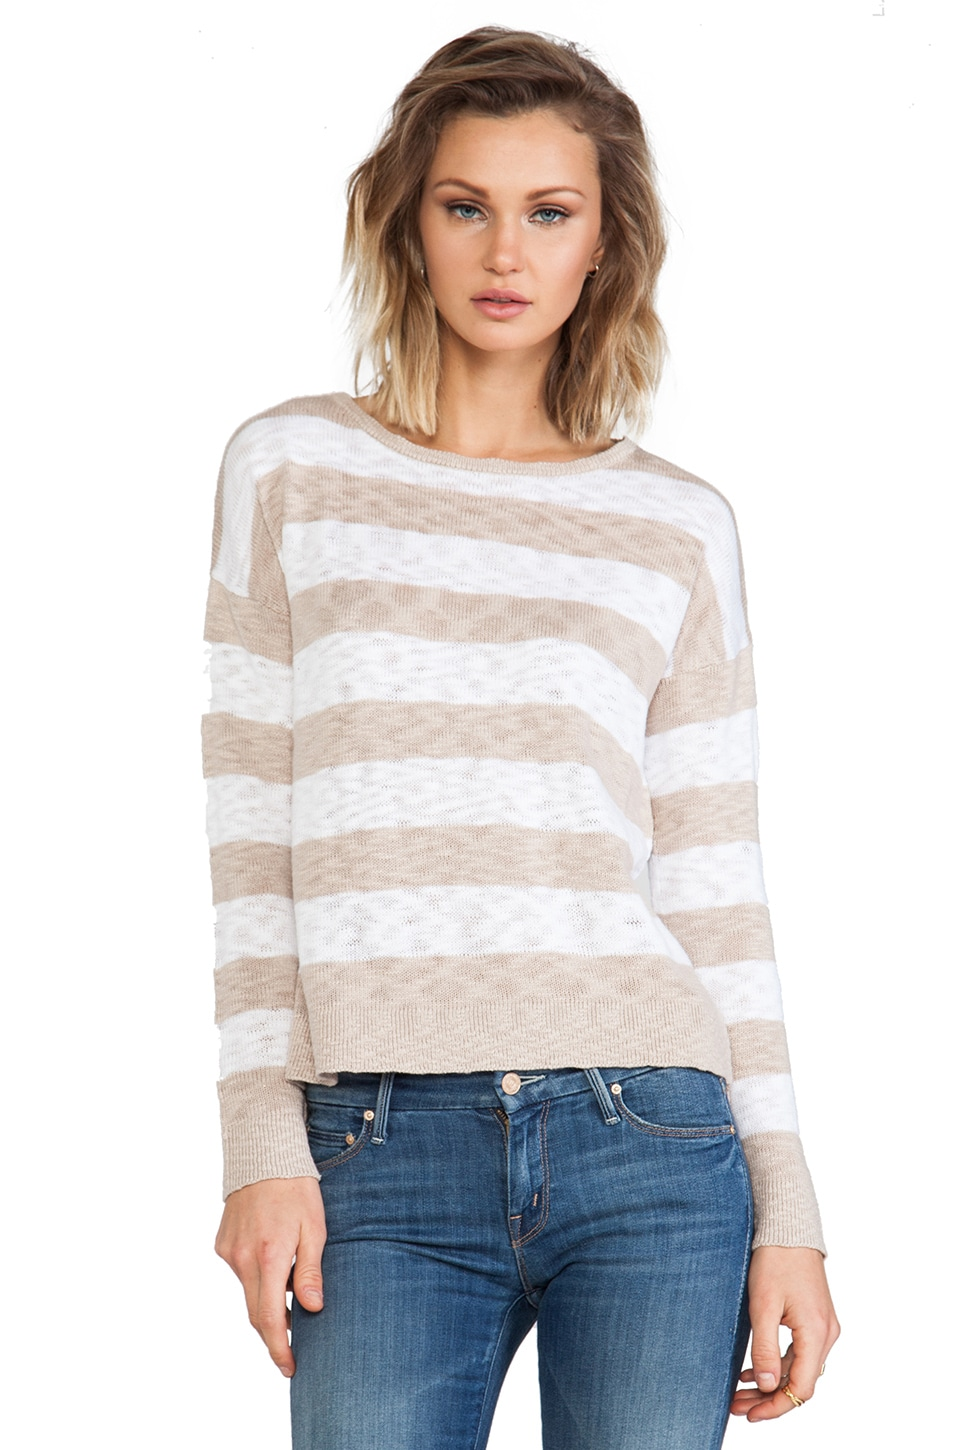 C&C California Striped Sweater in Sand